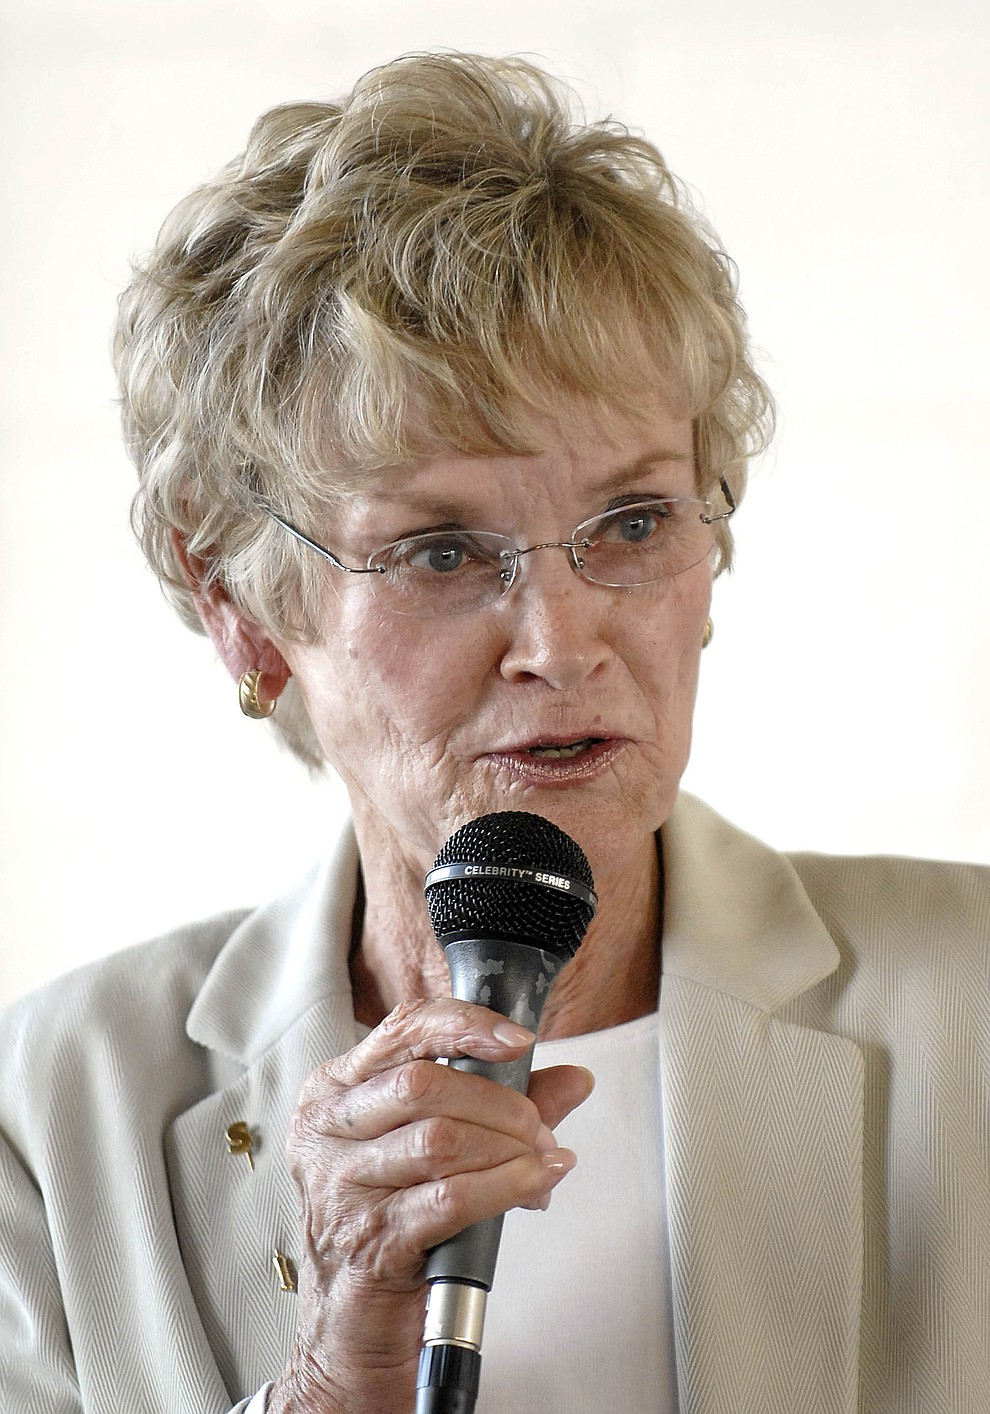 County Supervisor Carol Springer states her position and thoughts on issues Thursday July 24, 2008 at a forum for supervisor candidates. (Courier file photo)